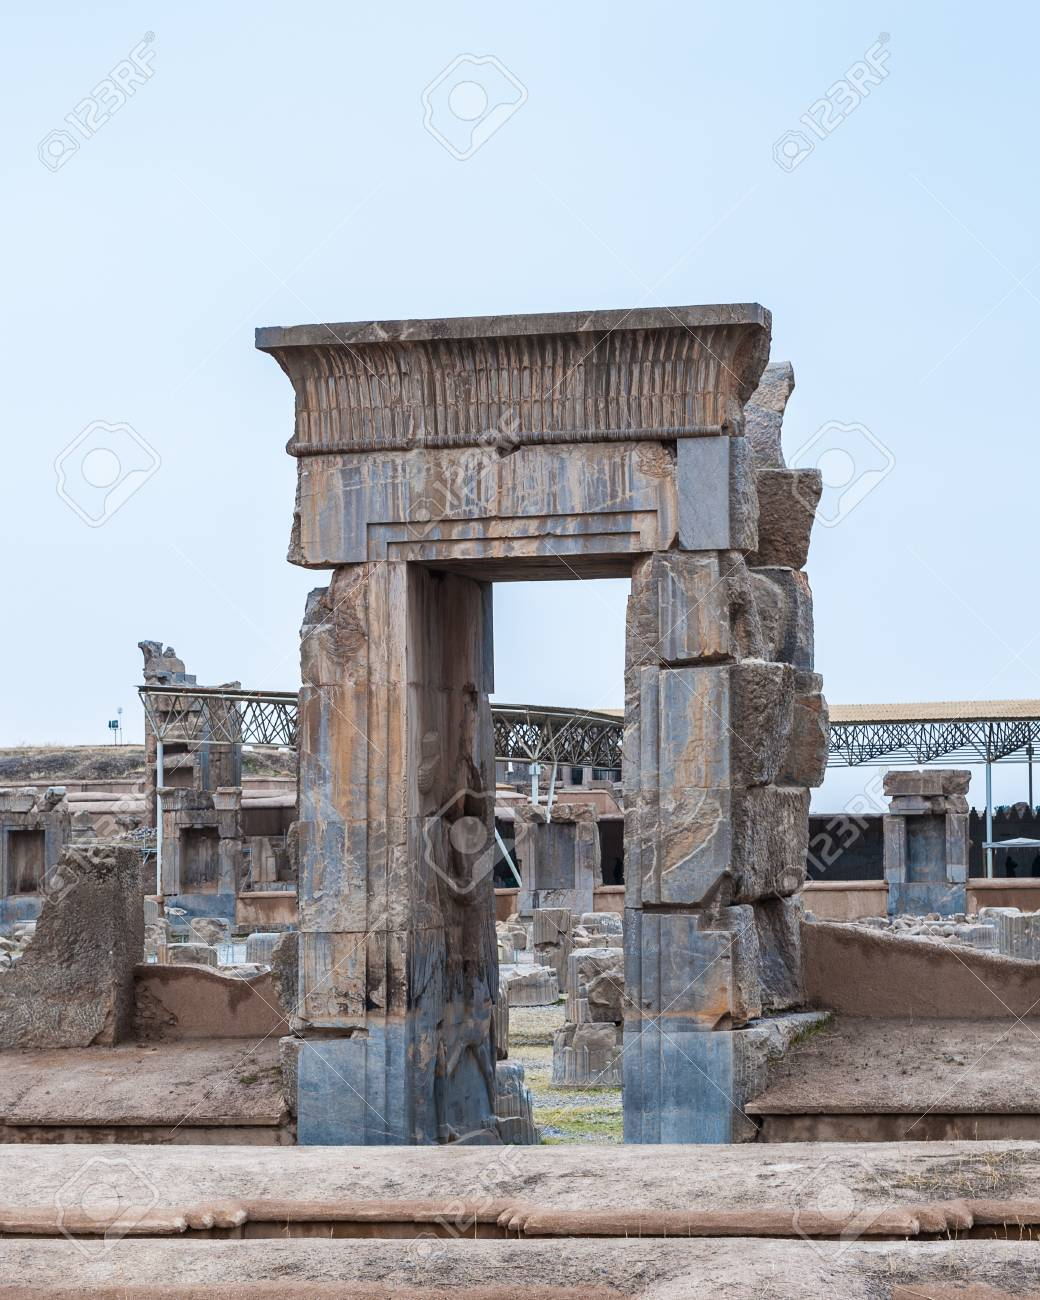 Apadana Of Xerxes In The Ancient City Of Persepolis Iran Stock Photo Picture And Royalty Free Image Image 92022229